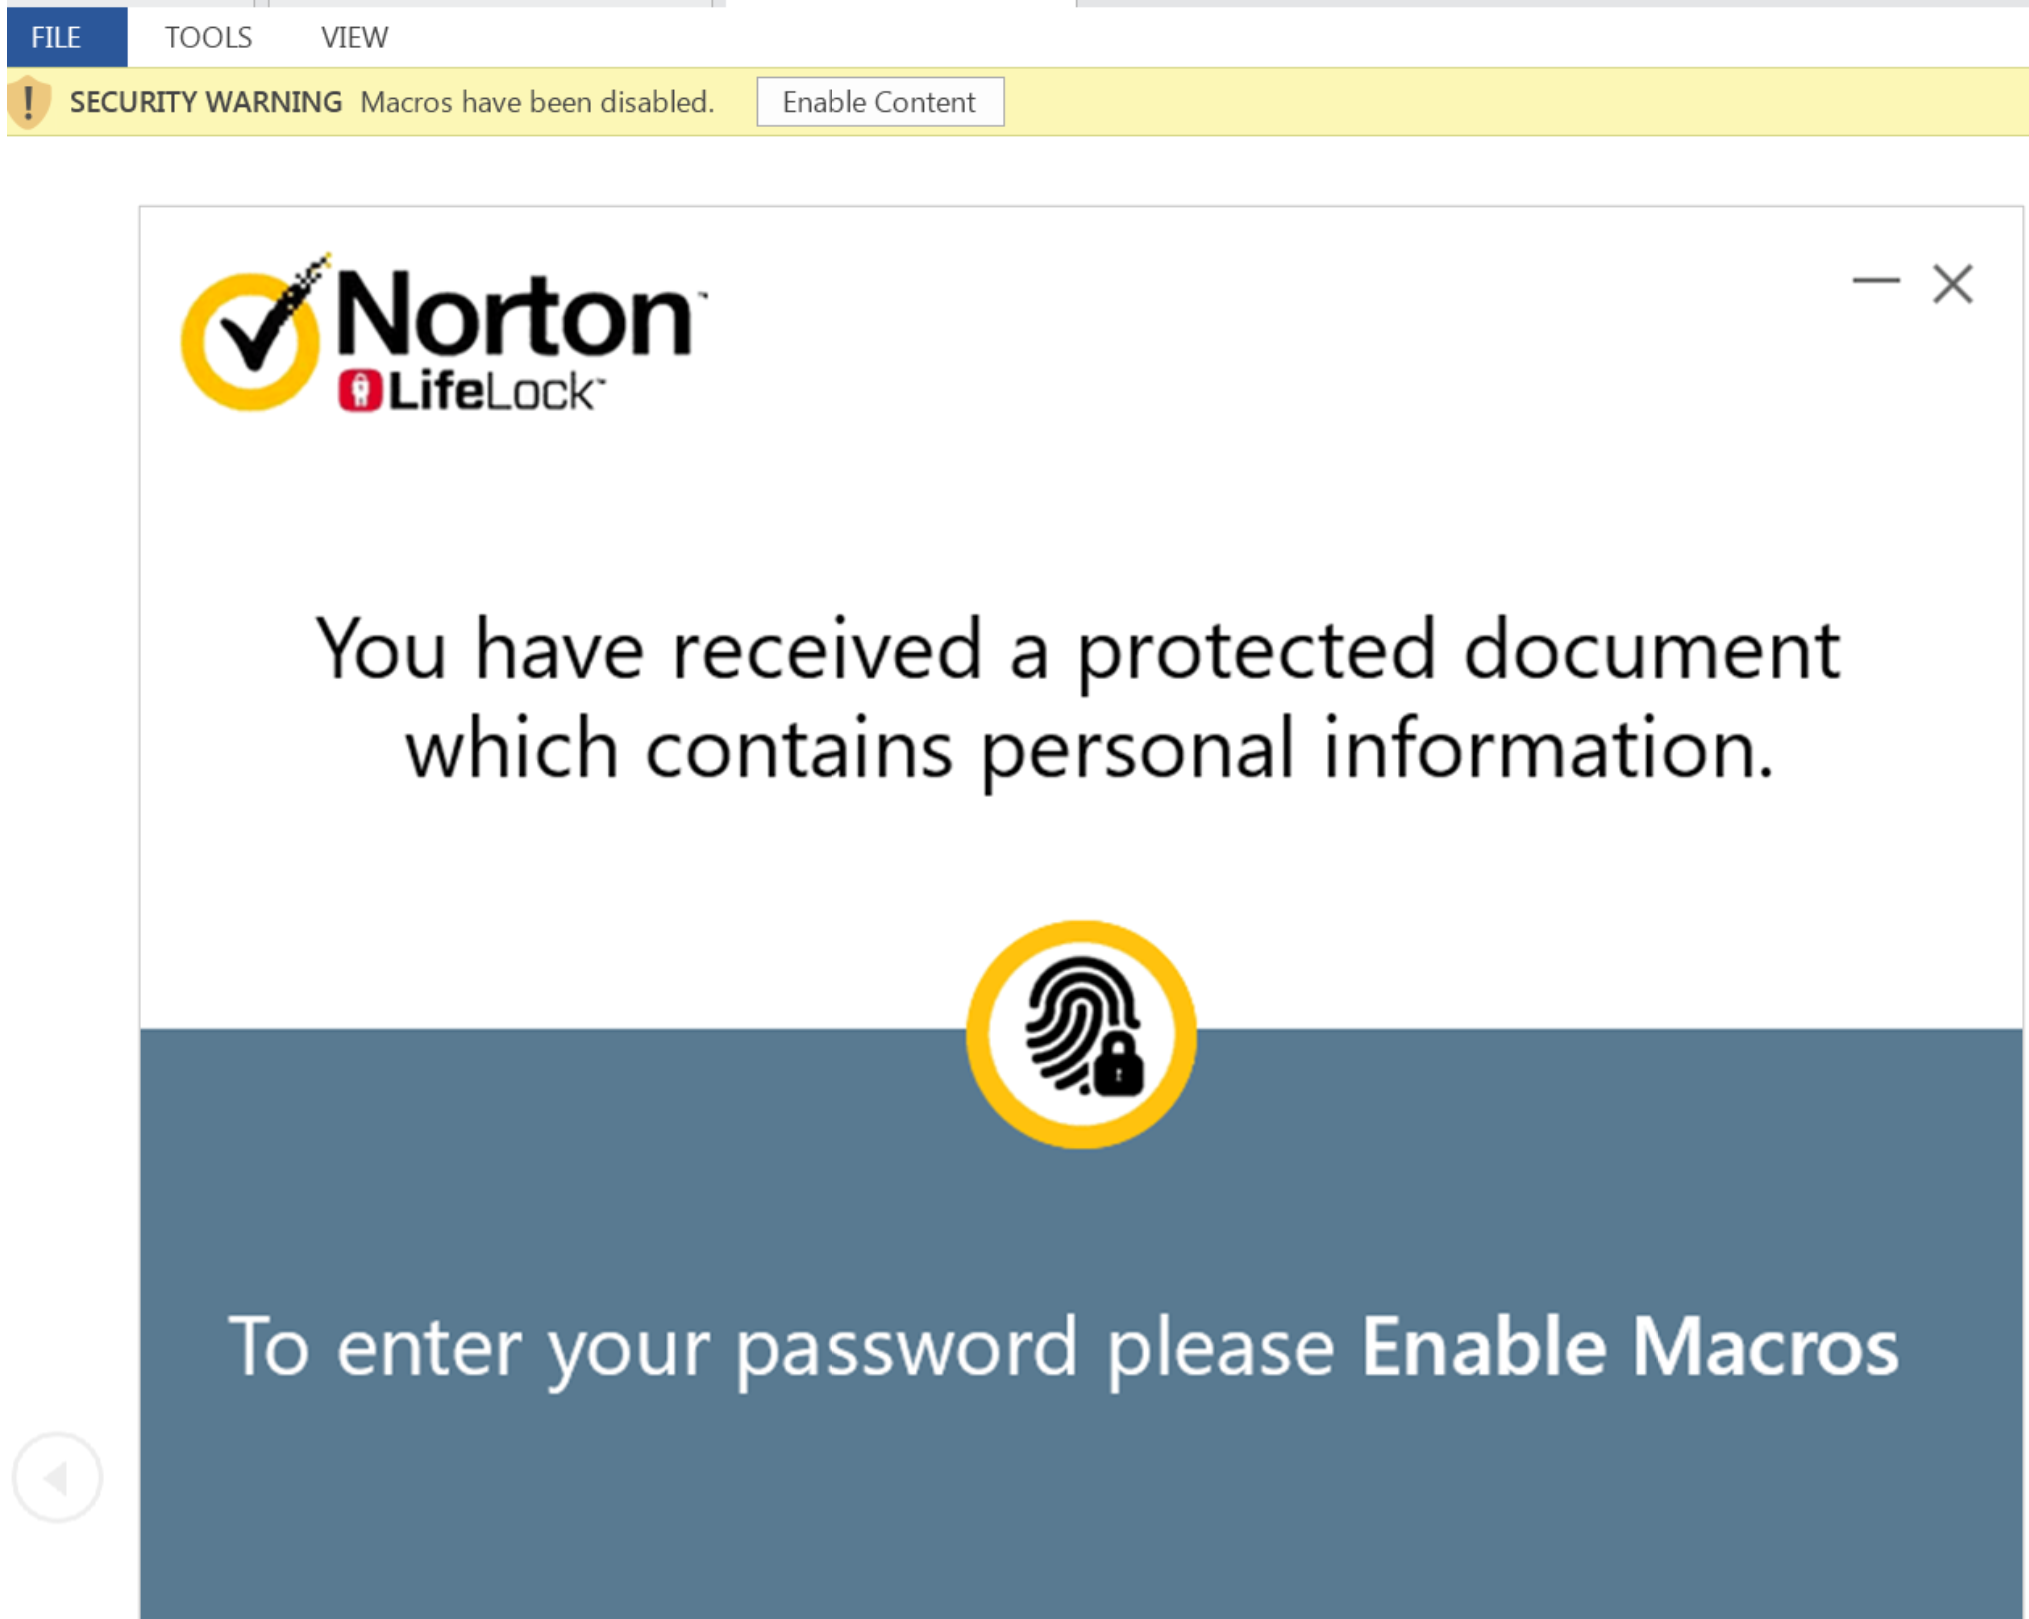 Figure-4.-Delivery-document-disguised-as-NortonLifeLock.